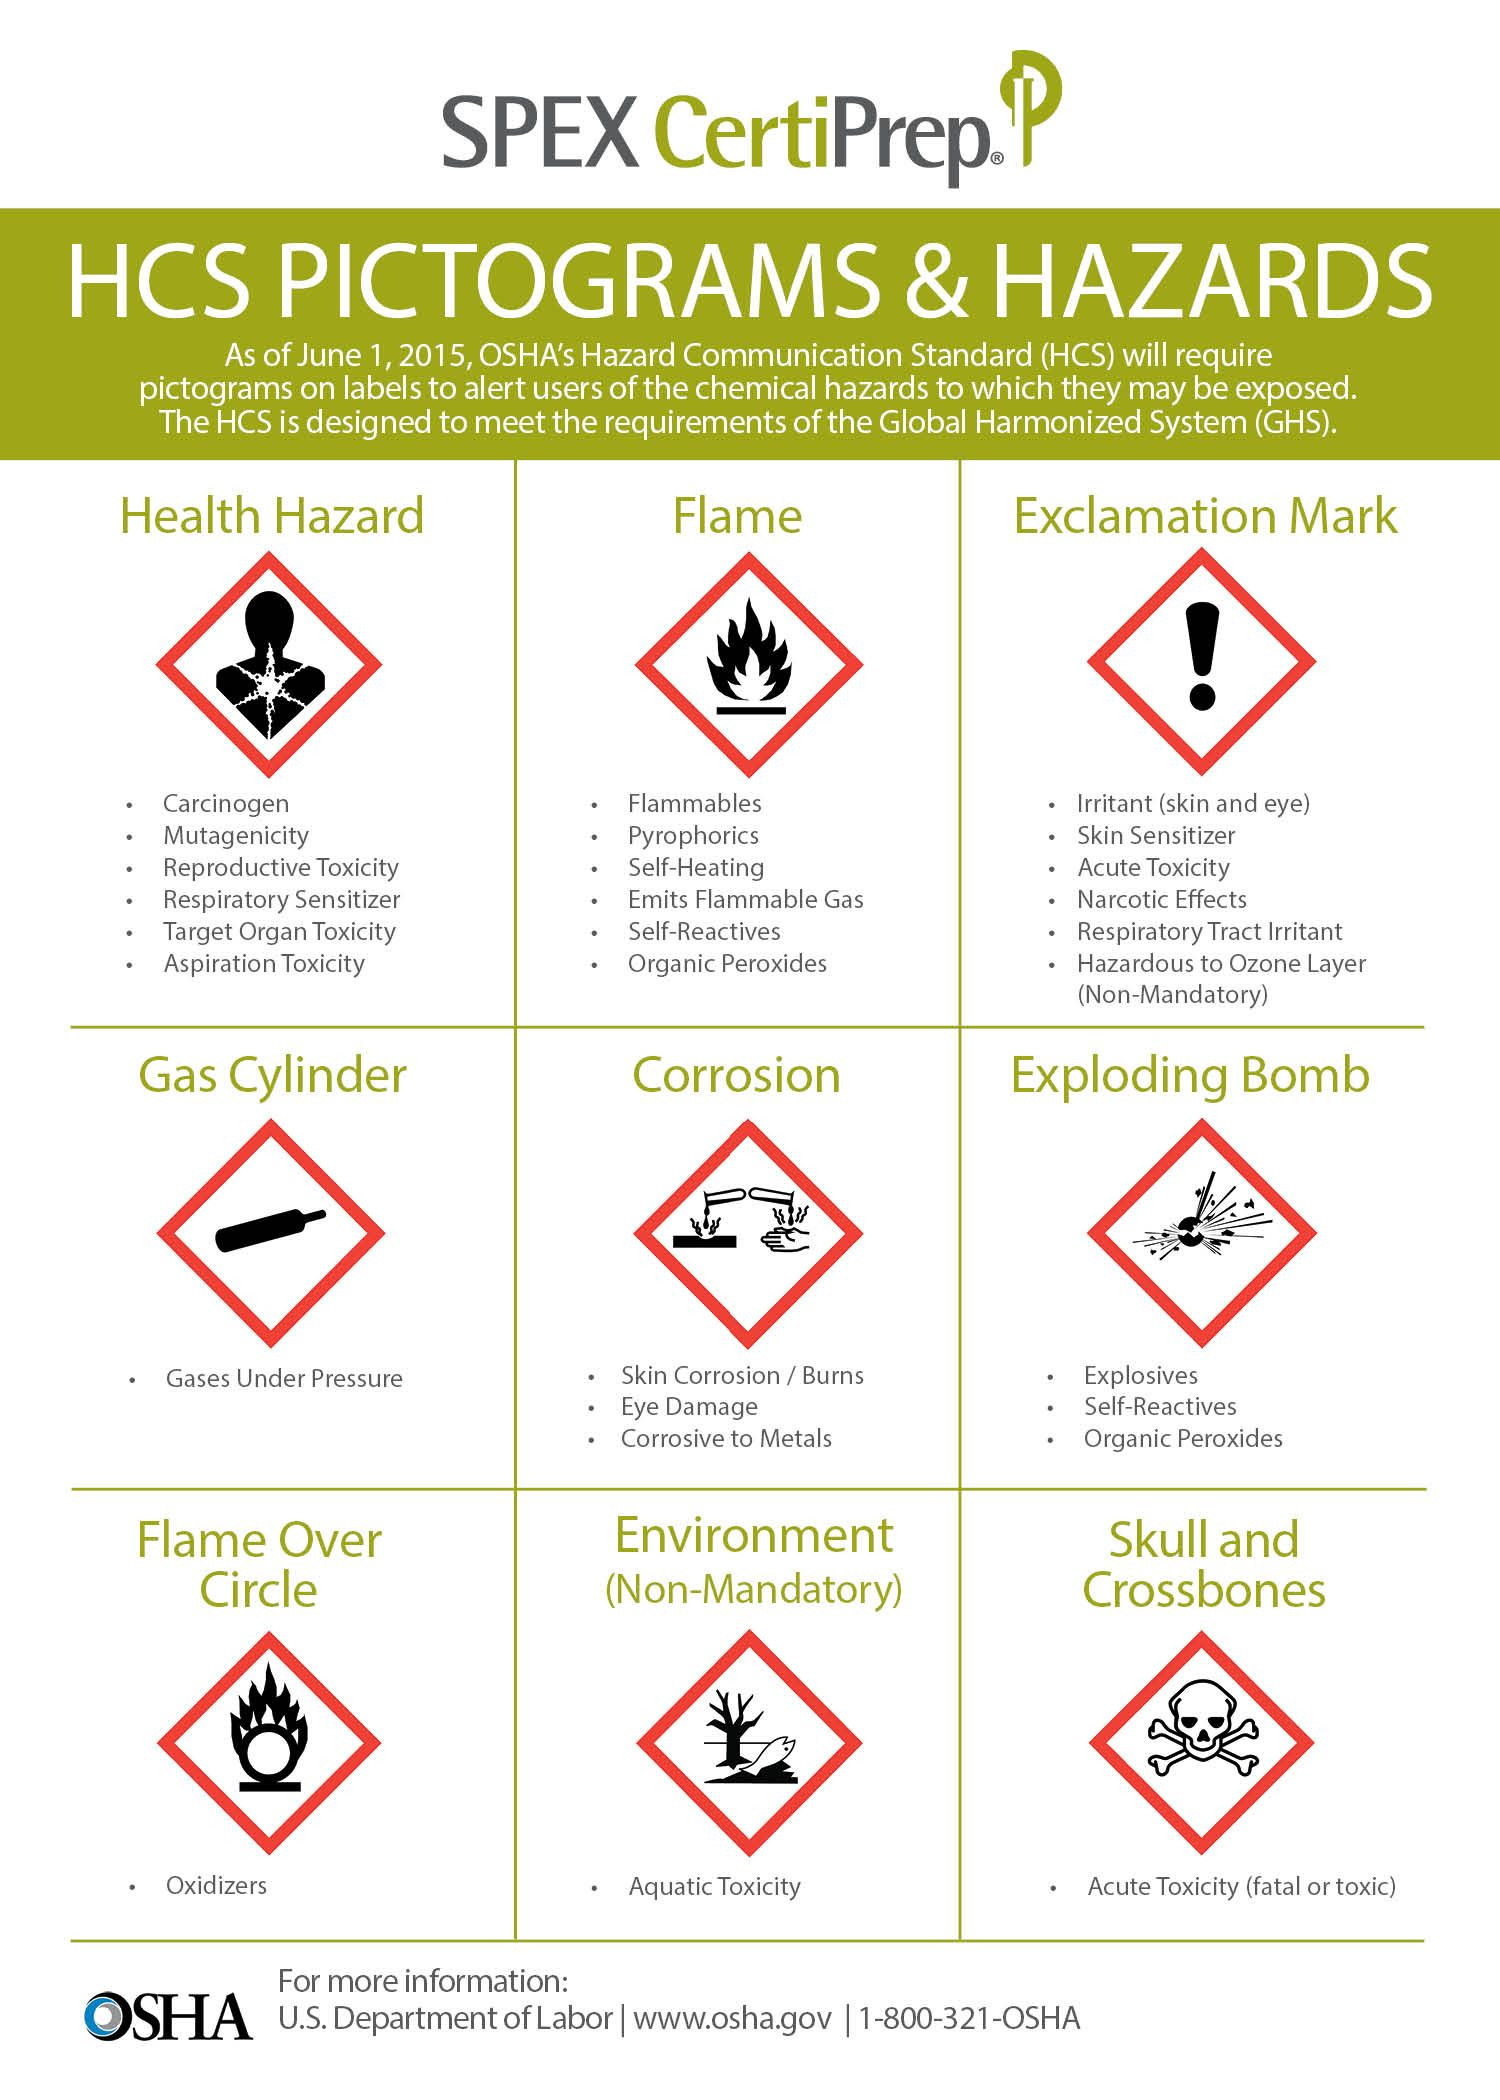 Pin by vladimir revollo gonzles on seguridad e higiene industrial dangerous goods info graphics safety label industrial security guard infographic infographics buycottarizona